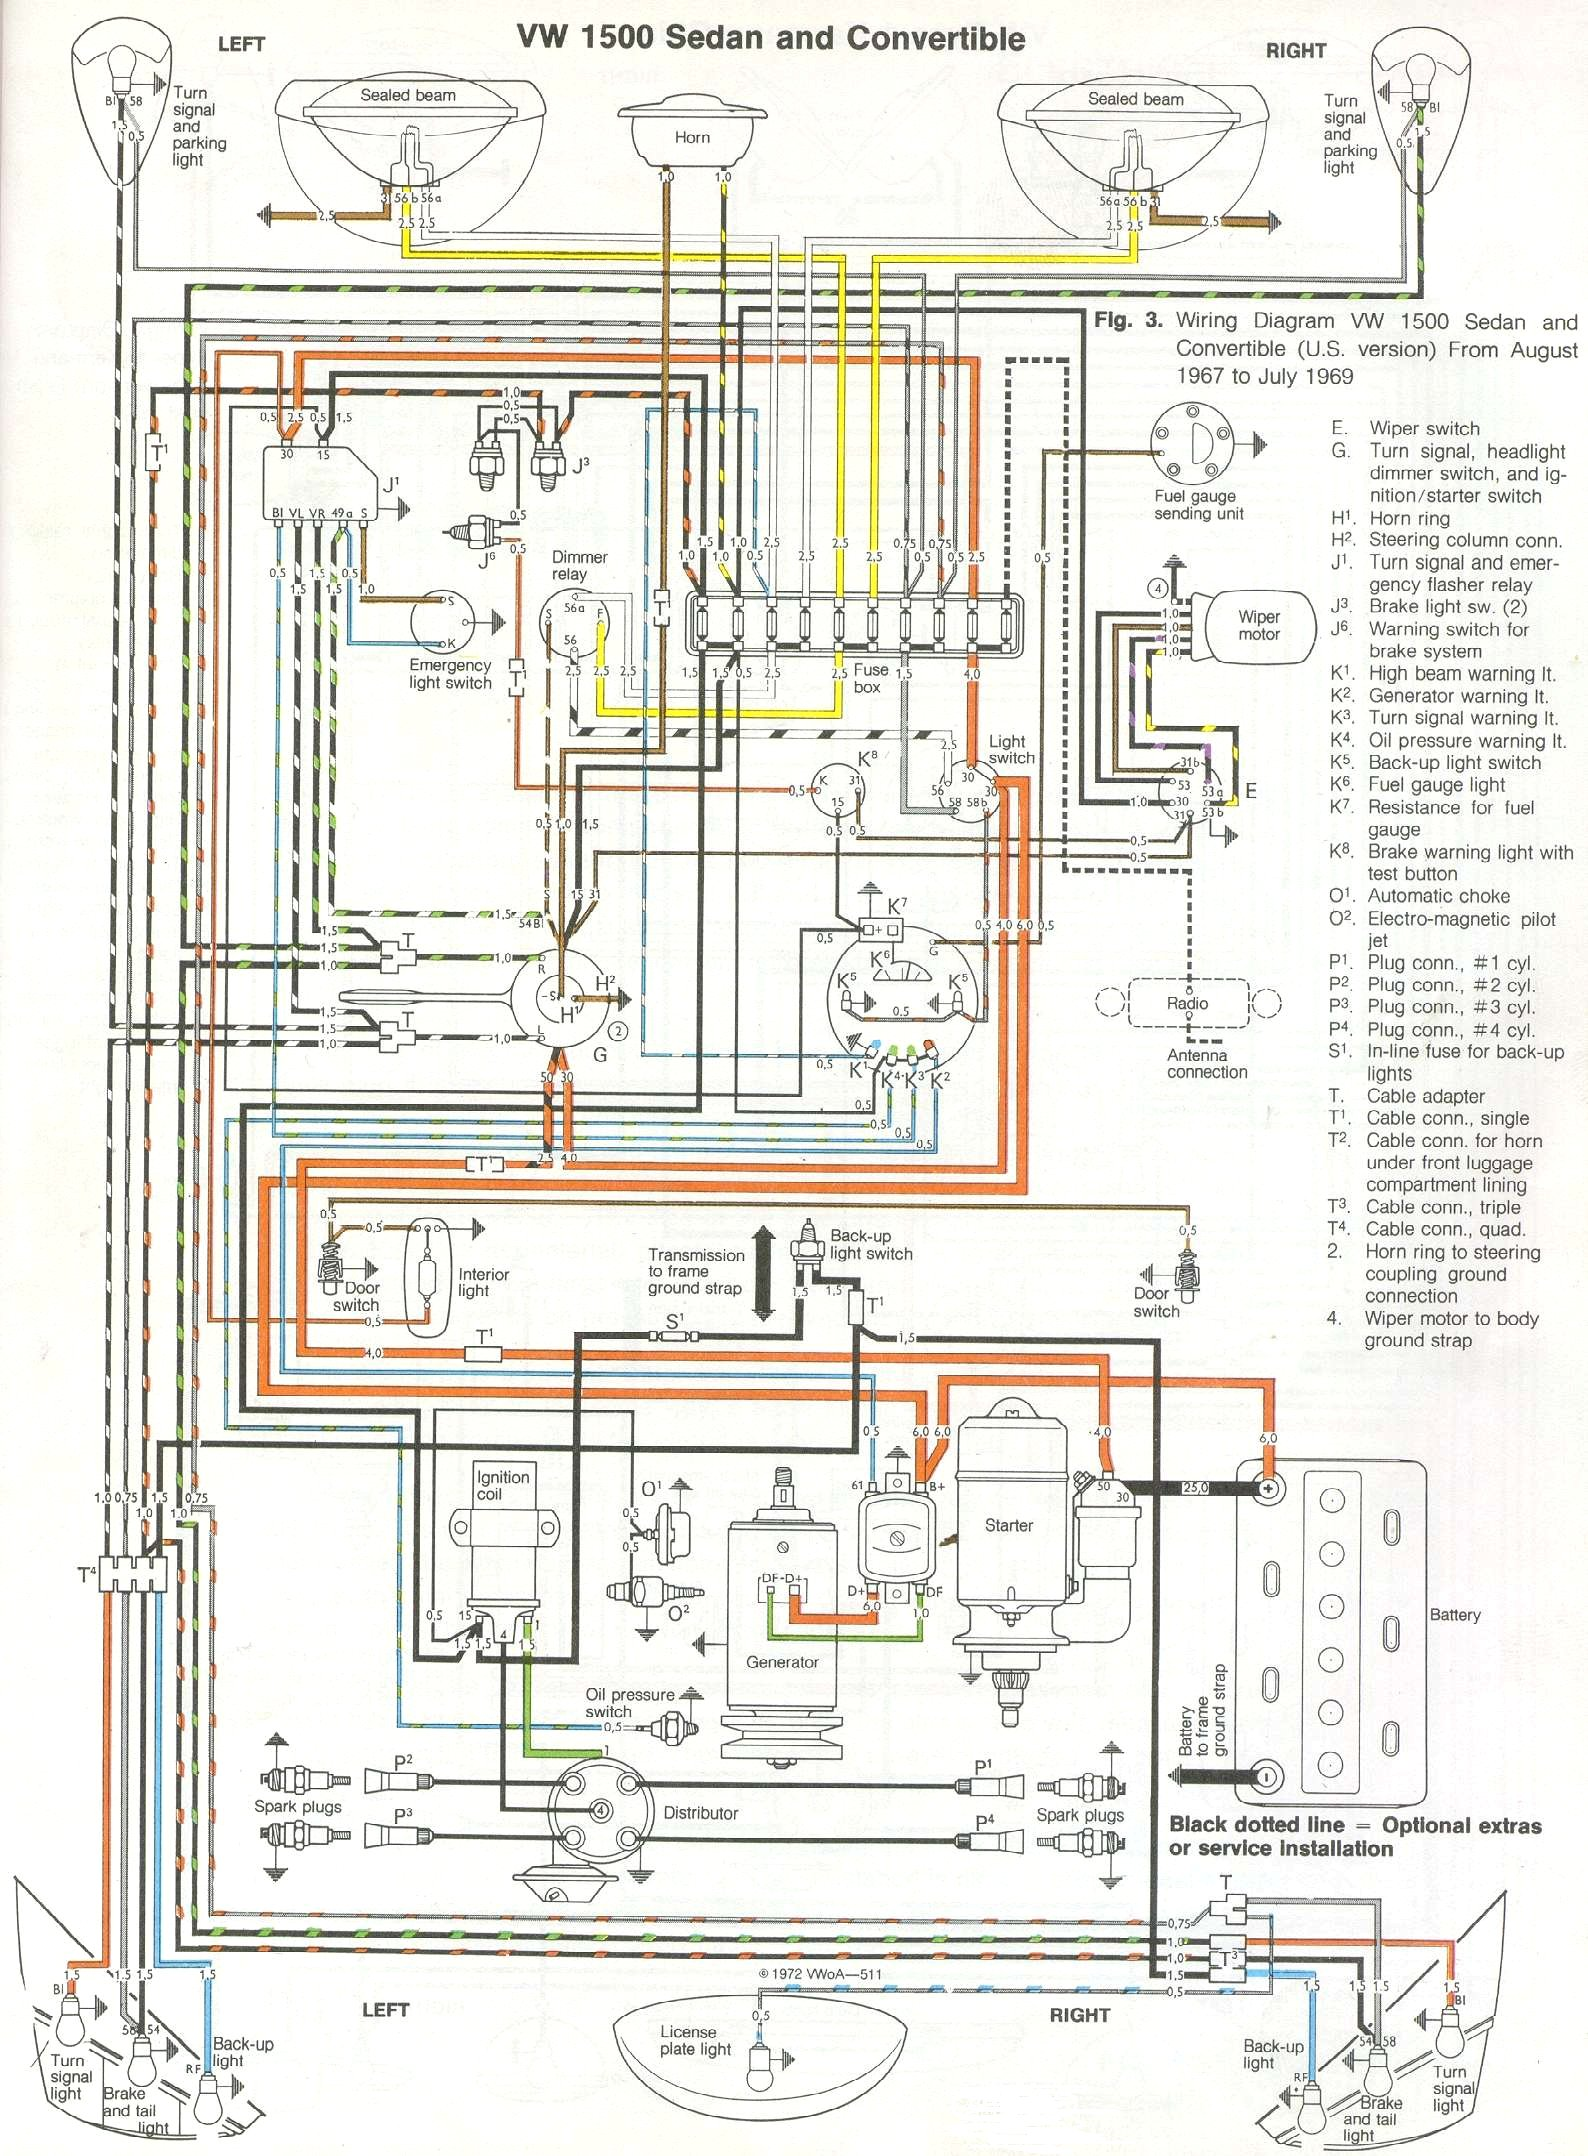 Volkswagon New Beetle Fuse Diagram | Wiring Diagram 2019 on 1969 camaro wiring diagram, 70 chevelle wiring diagram, 1966 chevelle wiring diagram, 1966 impala wiring diagram, ignition box wiring diagram, 1968 camaro wiring diagram, 1964 nova exhaust system, 1964 nova radio, 1959 impala wiring diagram, 1965 chevelle wiring diagram, 1960 impala wiring diagram, 1965 impala wiring diagram, 1970 chevelle wiring diagram, 1968 chevelle wiring diagram, 1967 camaro wiring diagram, 1967 impala wiring diagram, 64 chevelle wiring diagram, 1964 nova relay, 1963 corvette wiring diagram, 1964 nova headlight,